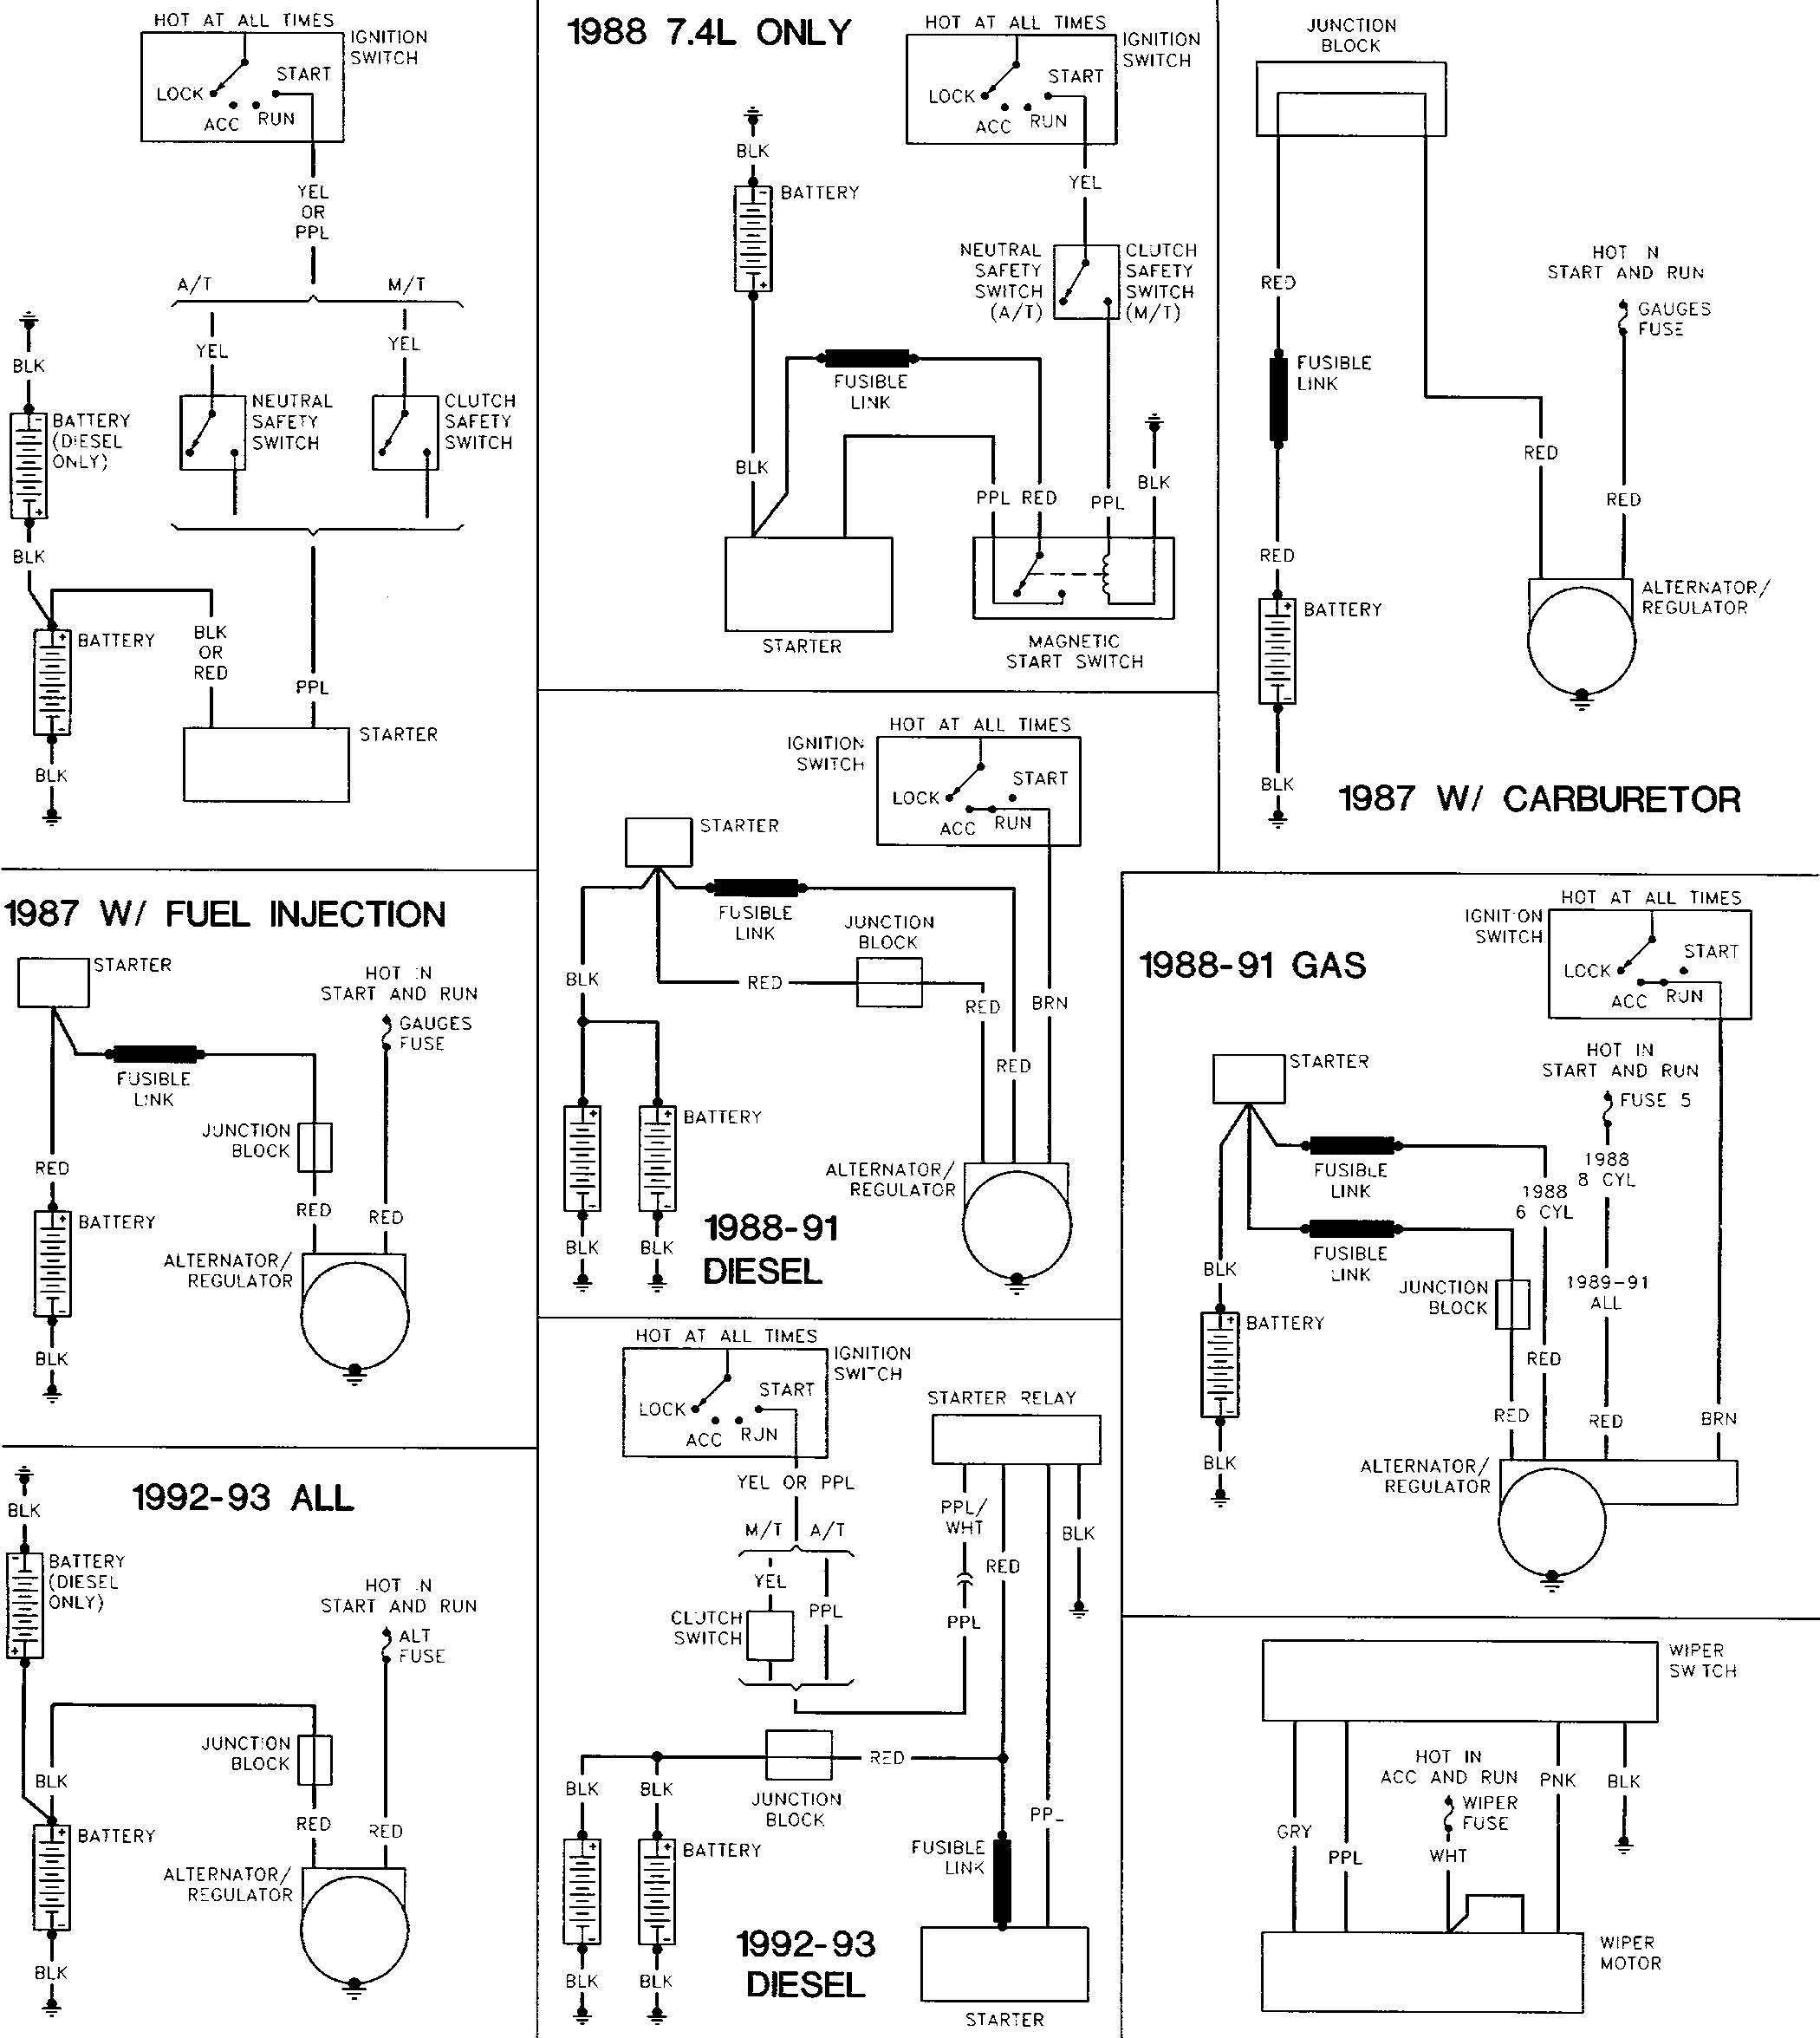 [DIAGRAM] 1992 Fleetwood Rv Wiring Diagram FULL Version HD